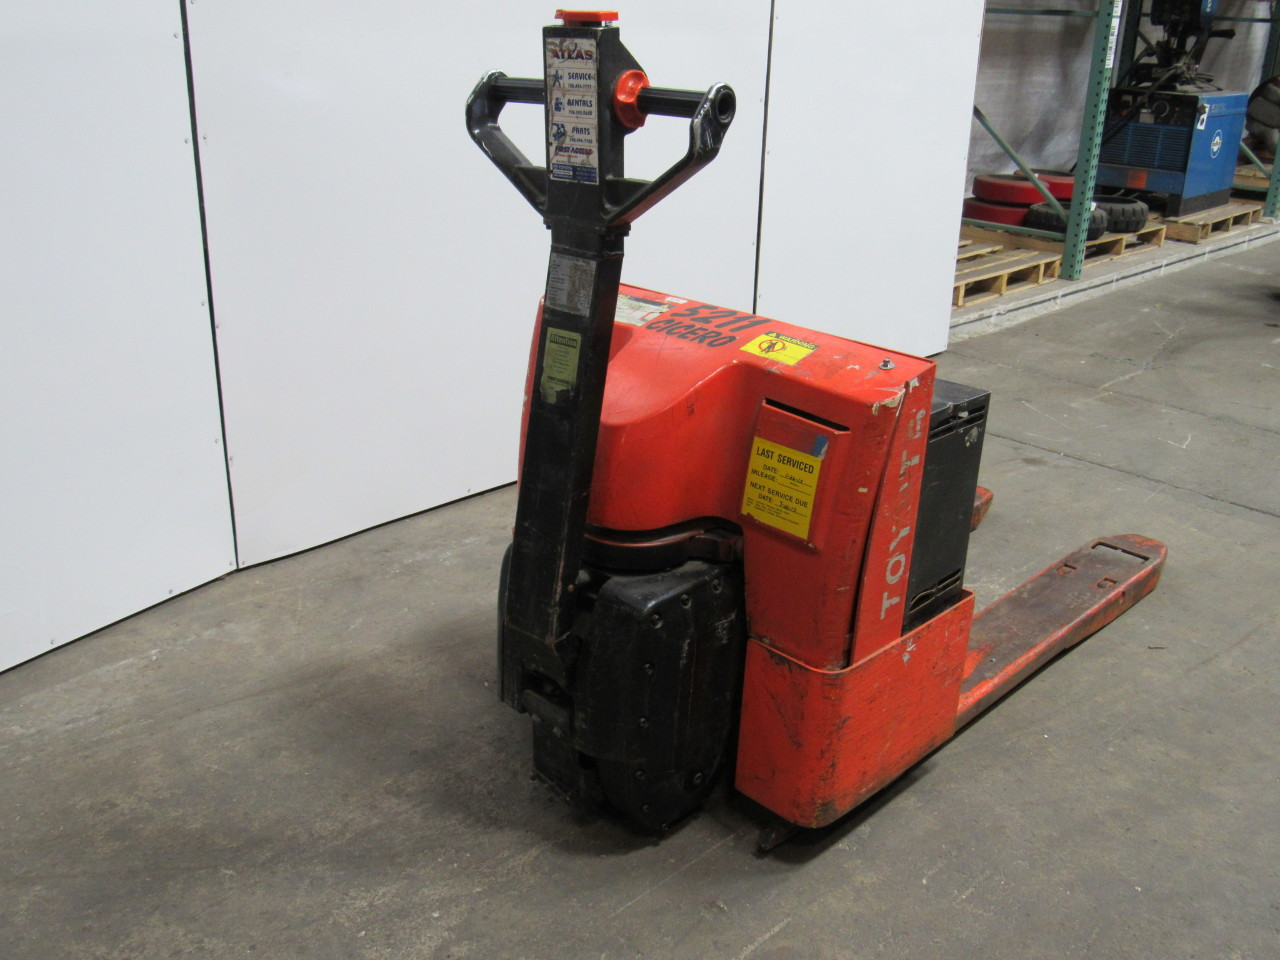 Toyota 6hbw20 Electric Pallet Jack Walkie Walk Behind 4000lb Cap Fork Lift Ebay